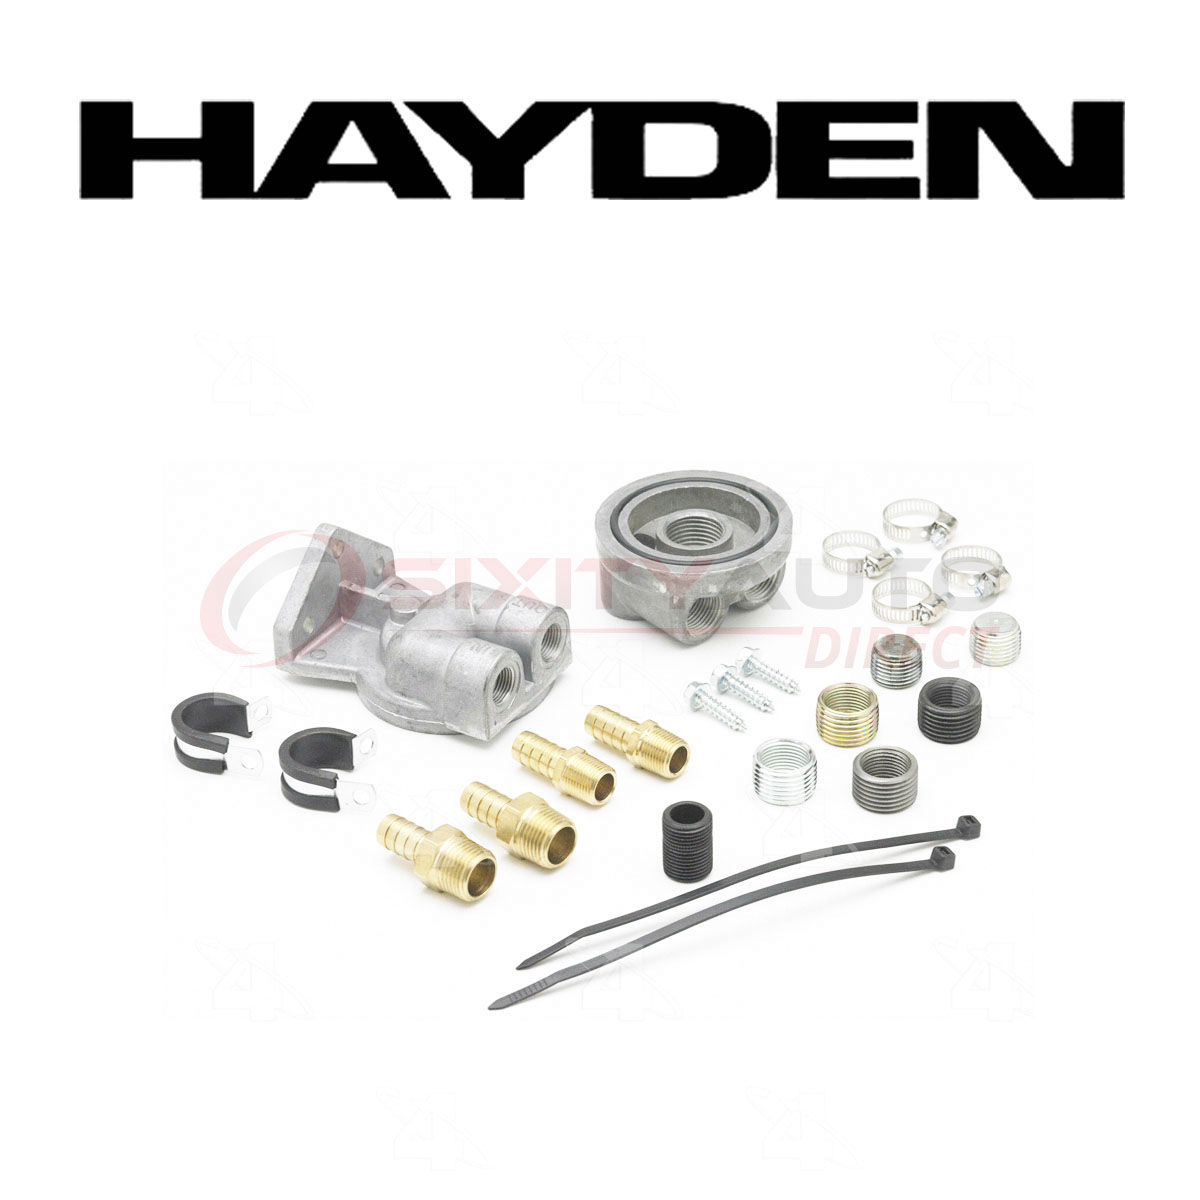 Hayden Oil Filter Remote Mounting Kit for 2012-2014 GMC